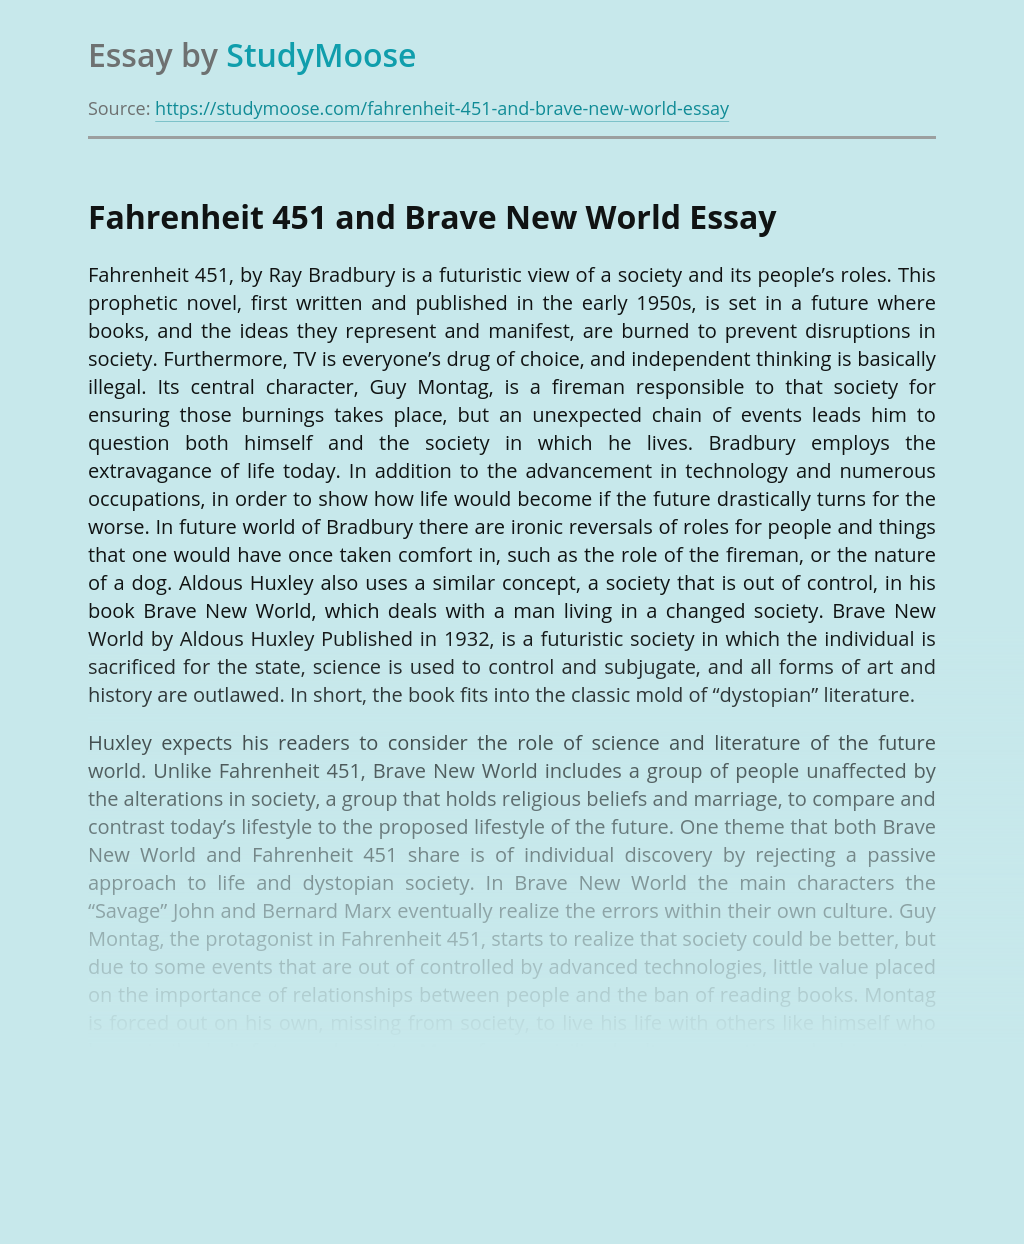 Fahrenheit 451 and Brave New World